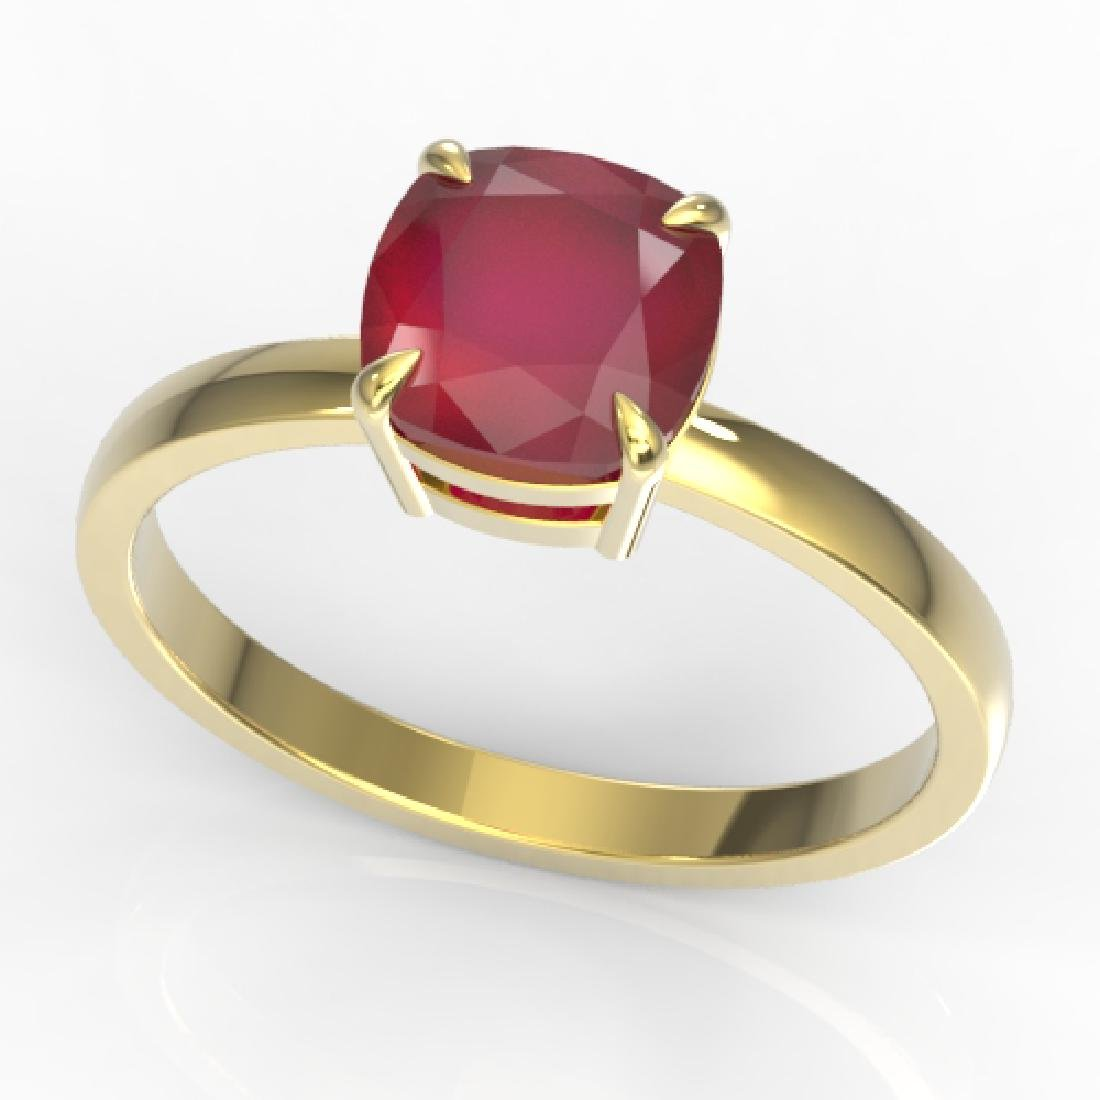 2 CTW Cushion Cut Ruby Designer Solitaire Engagement - 2